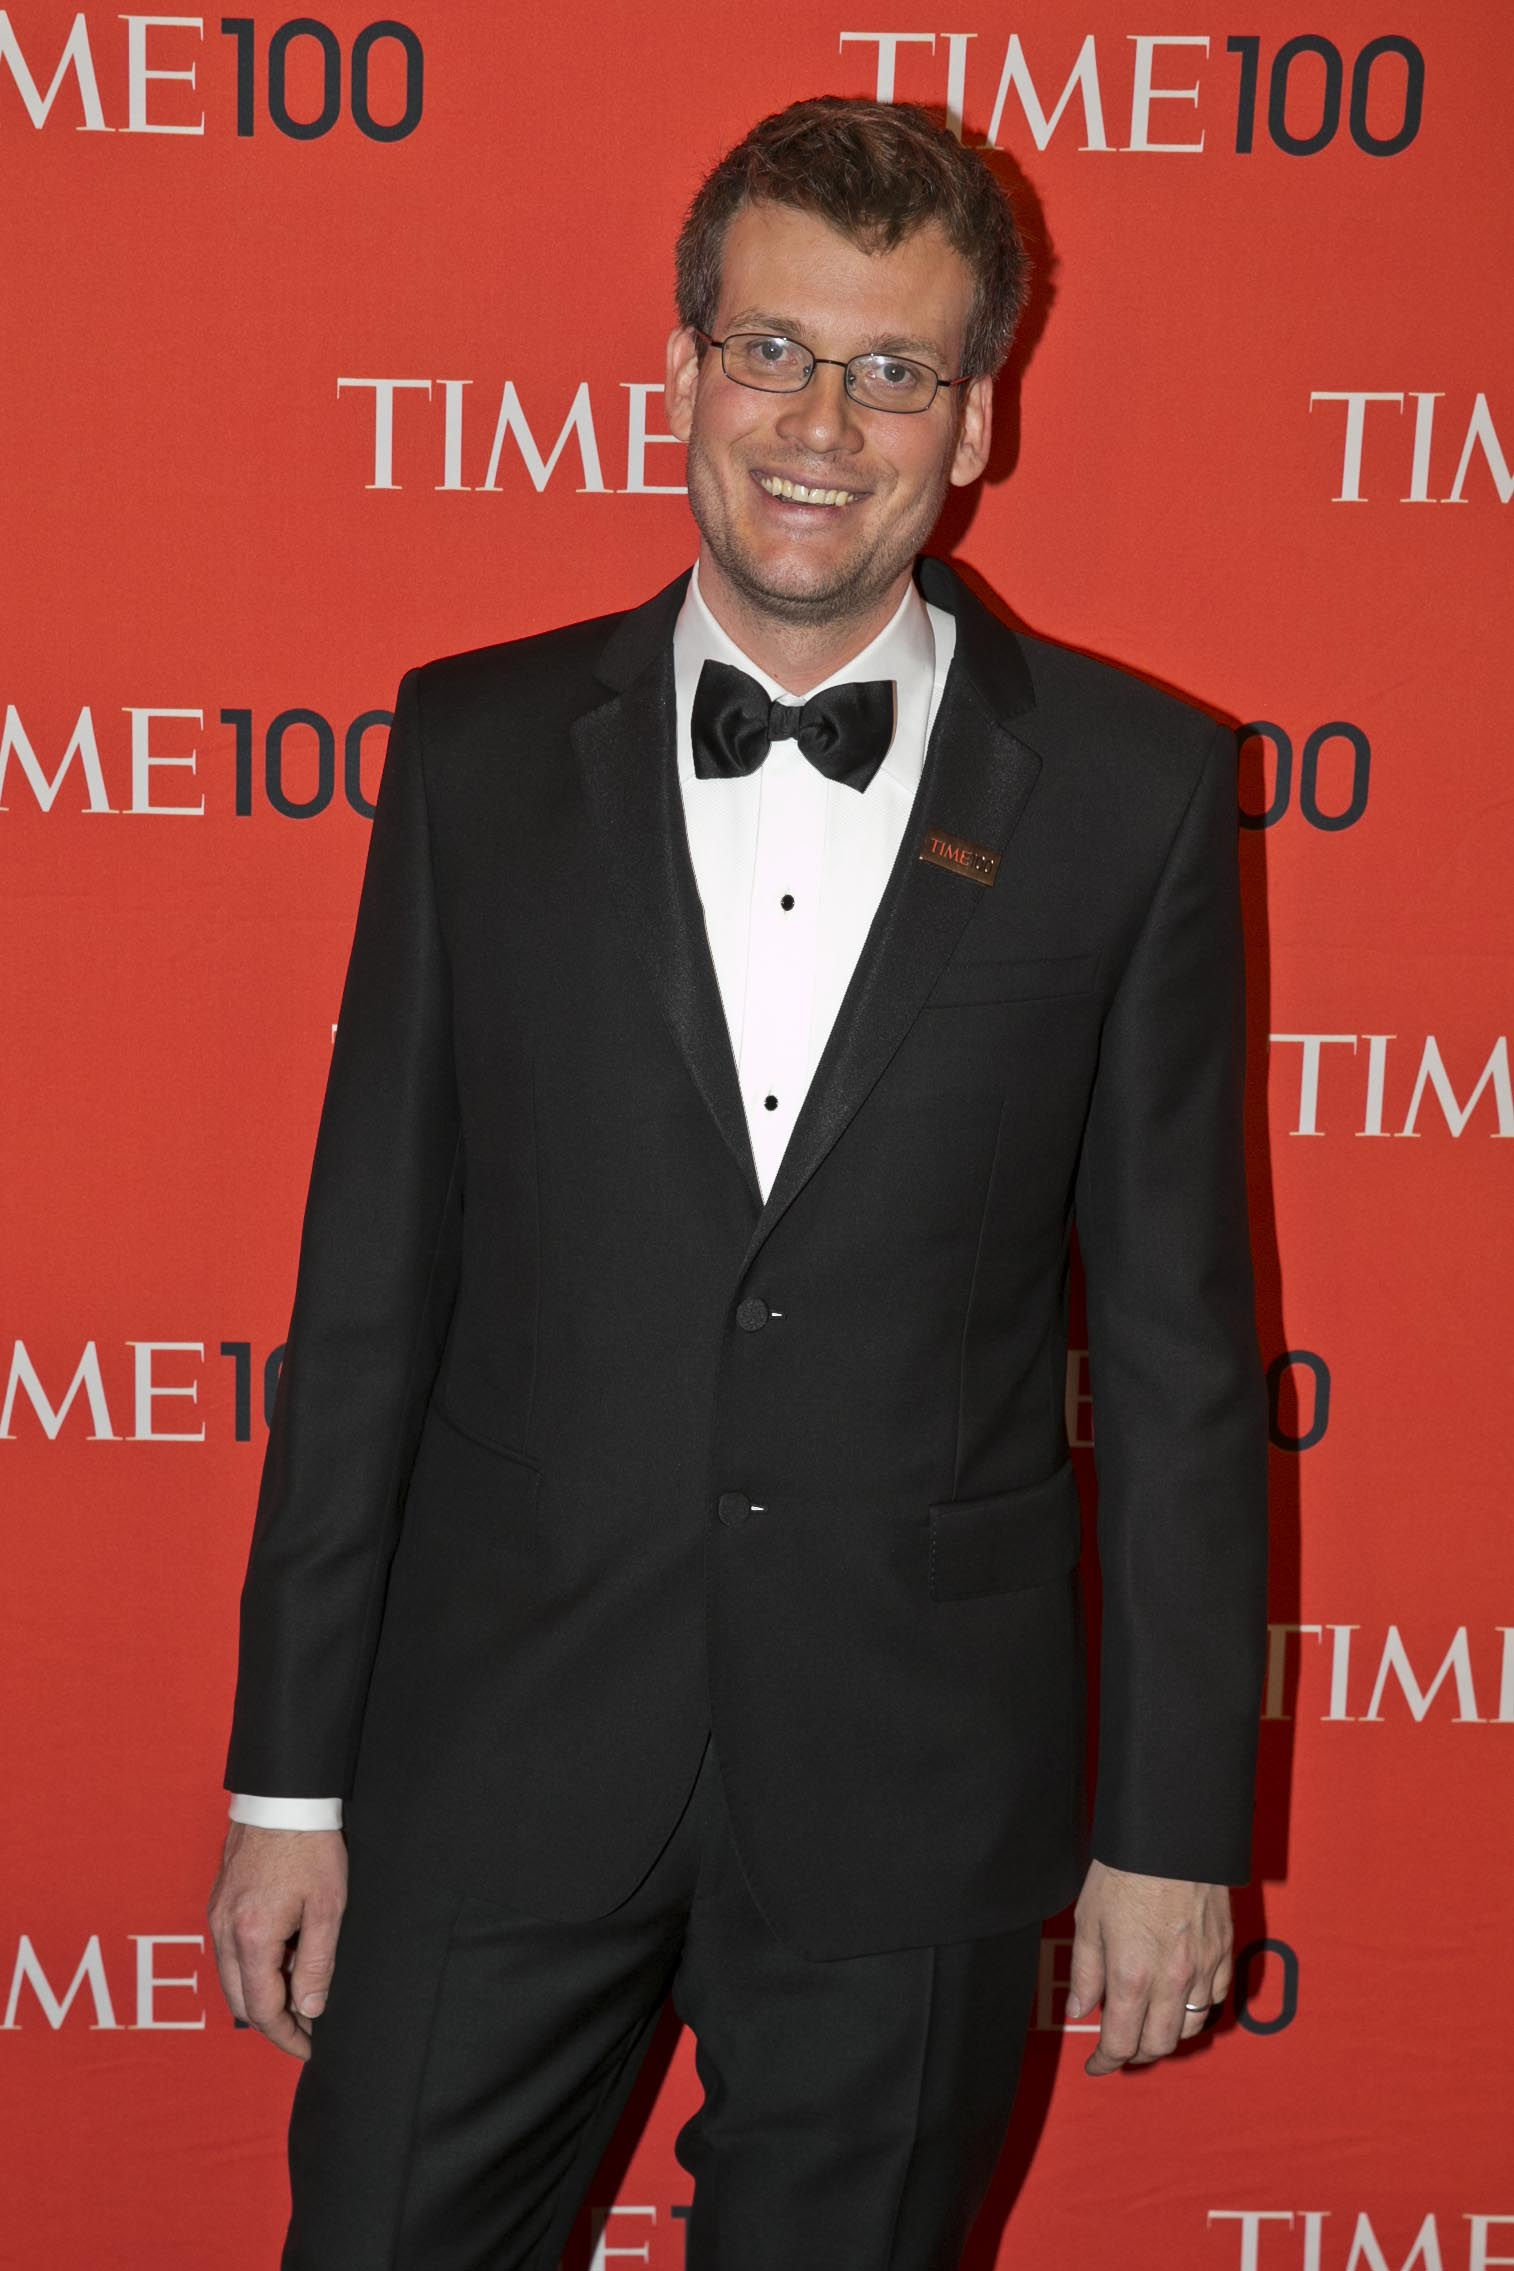 Honoree John Green at the Time 100 Gala at Jazz at Lincoln Center in New York on April, 29, 2014.